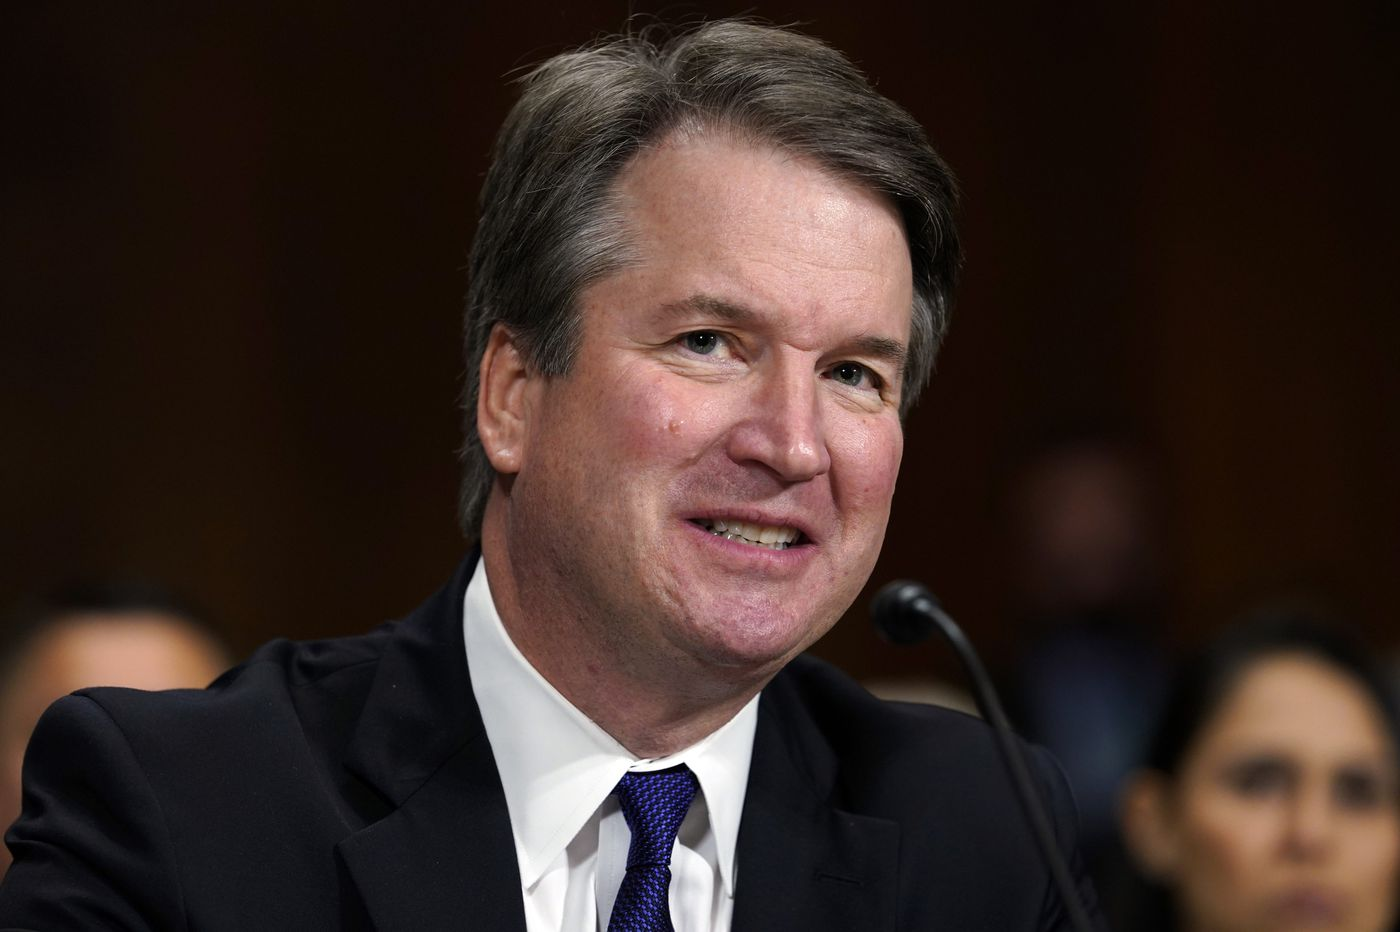 Brett Kavanaugh all but assured of confirmation to Supreme Court as key undecided senators announce support